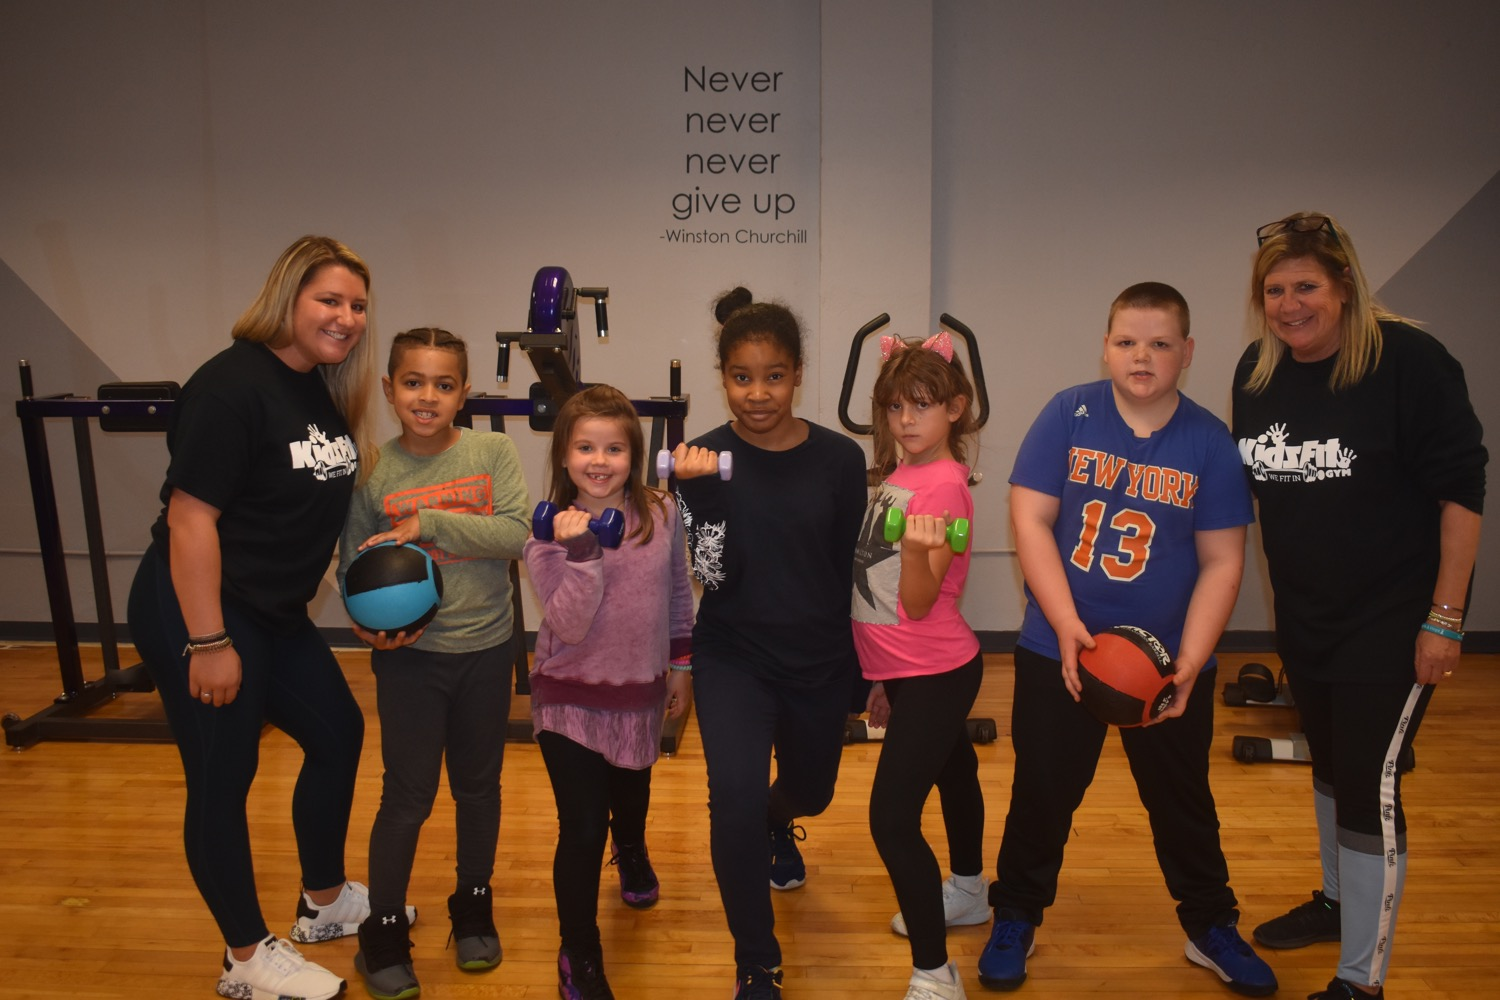 Commonpoint Queens in Little Neck unveils new kids-only exercise program